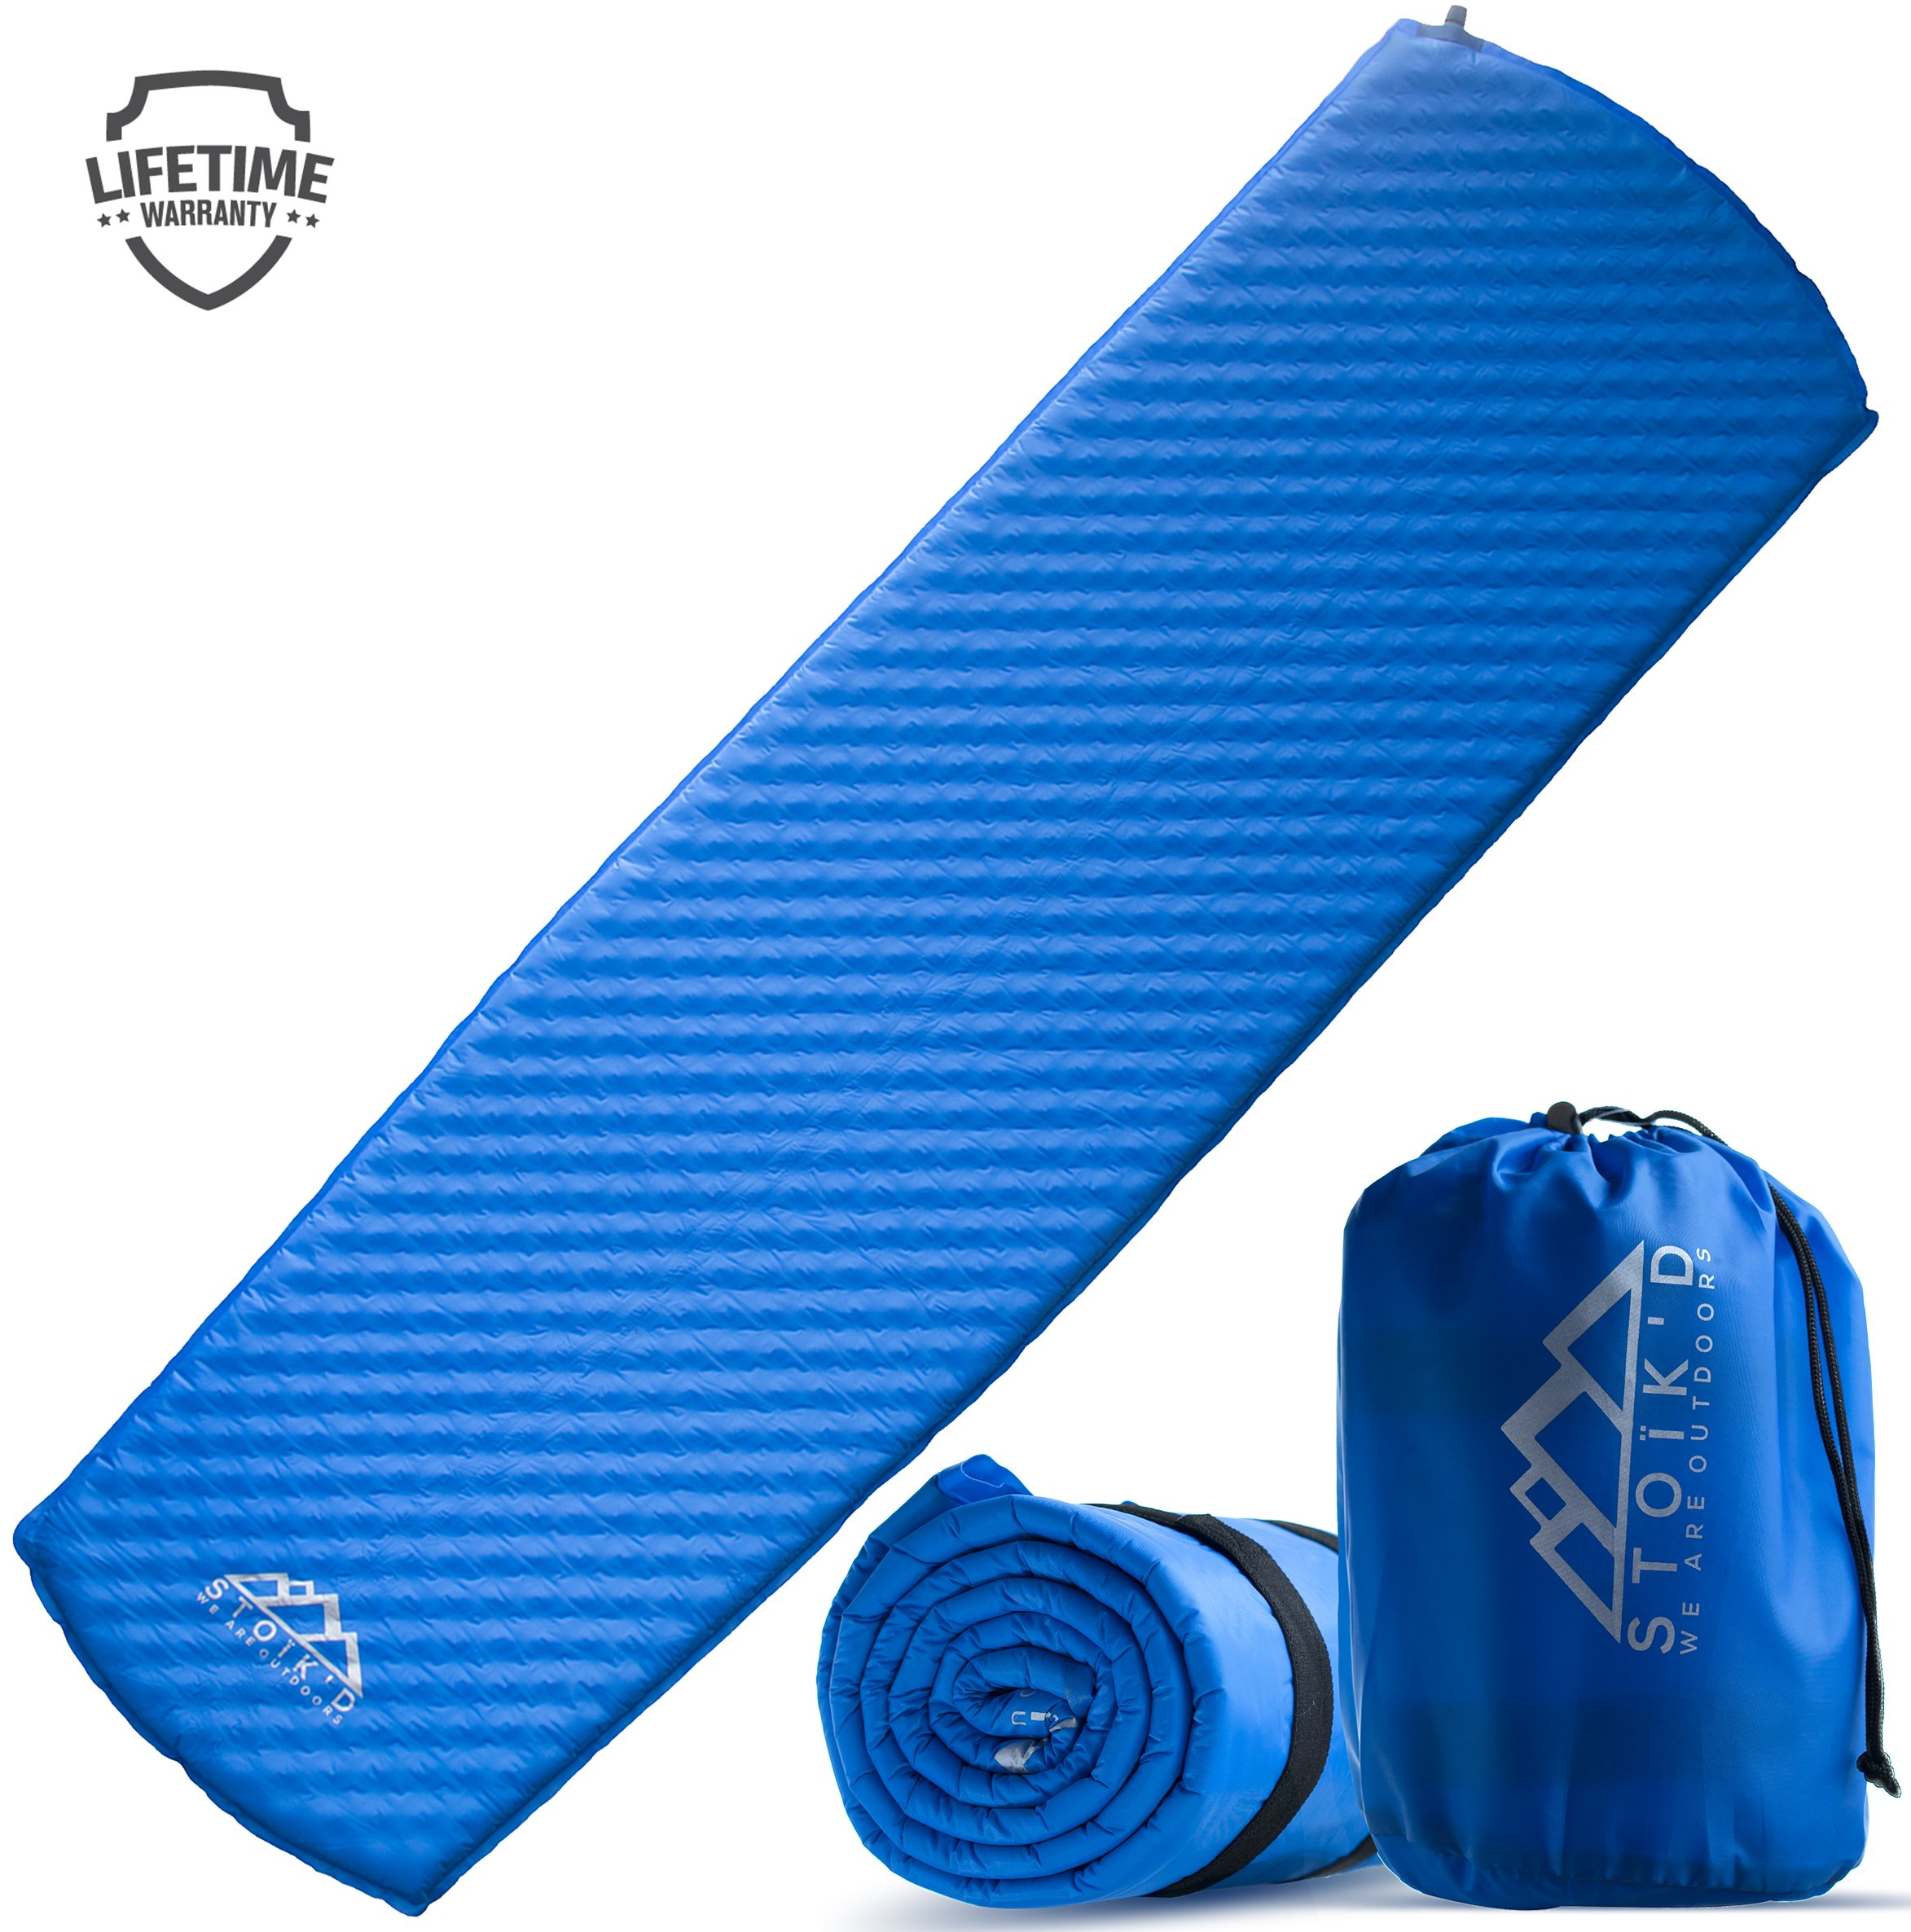 Inflatable mats are included 93